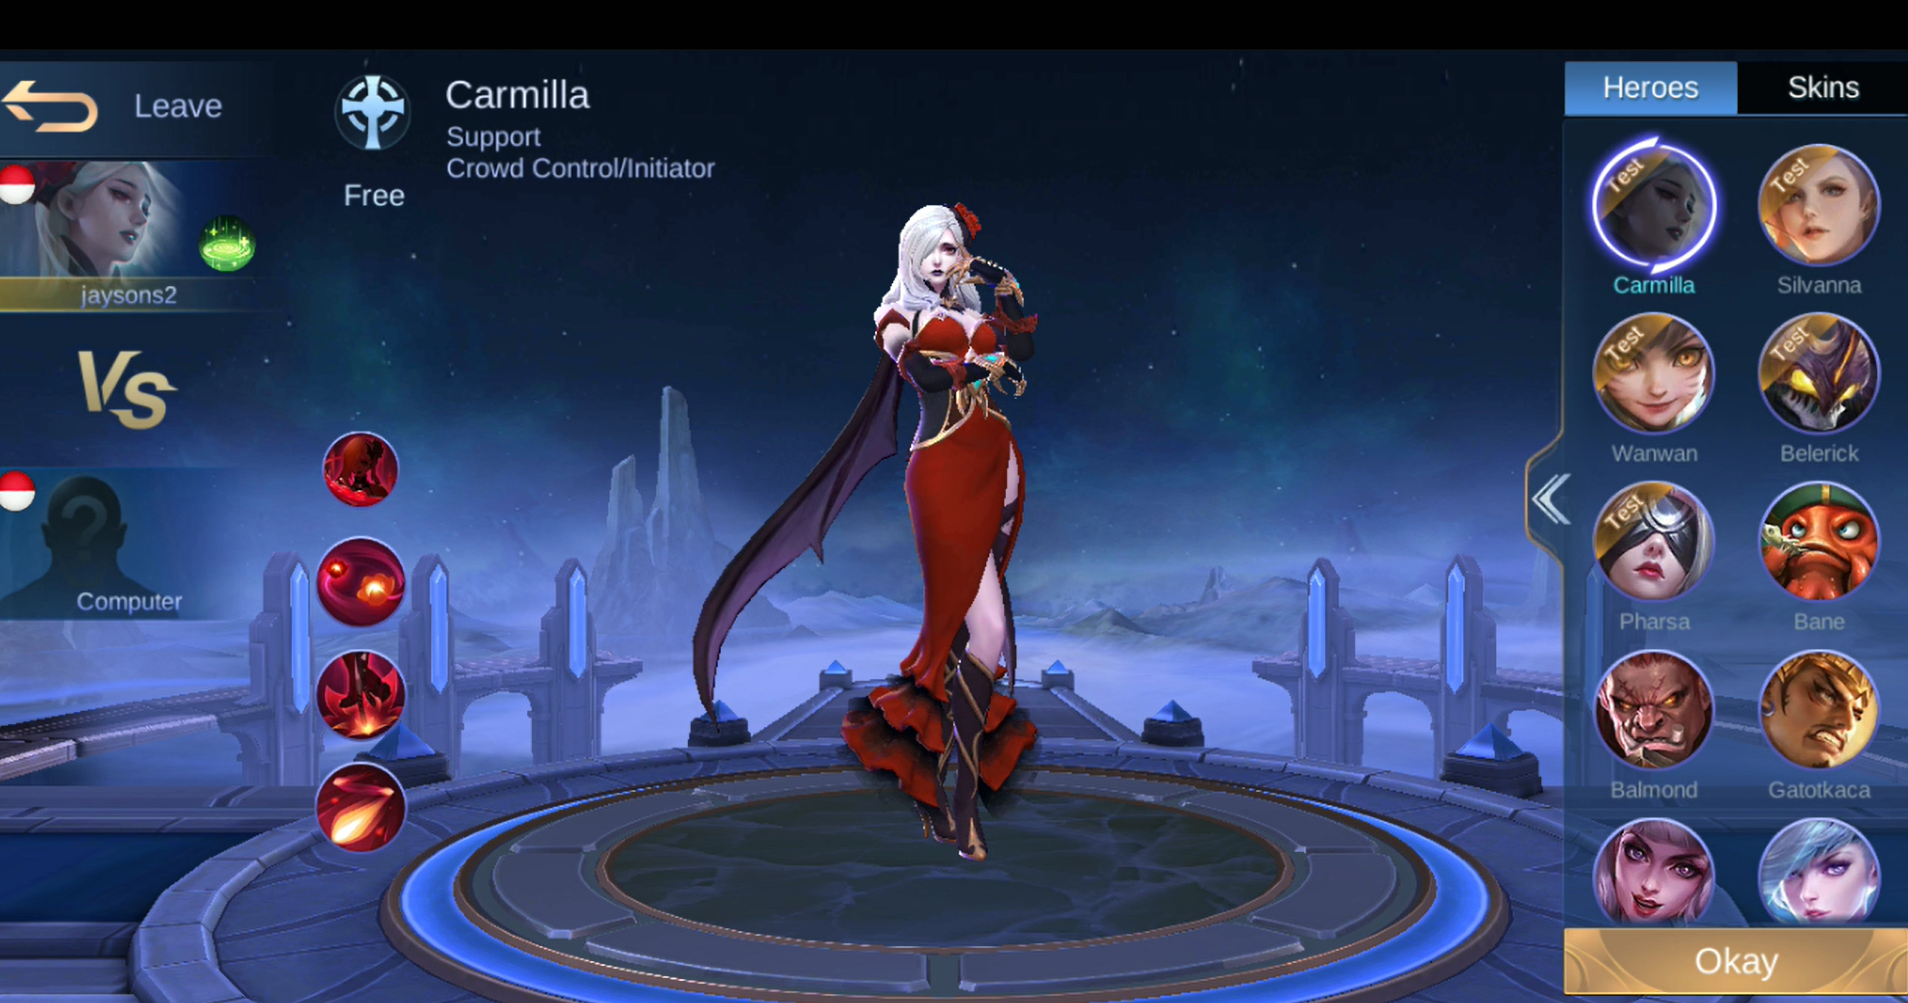 New Hero Carmilla (Support) - General Discussion - Mobile